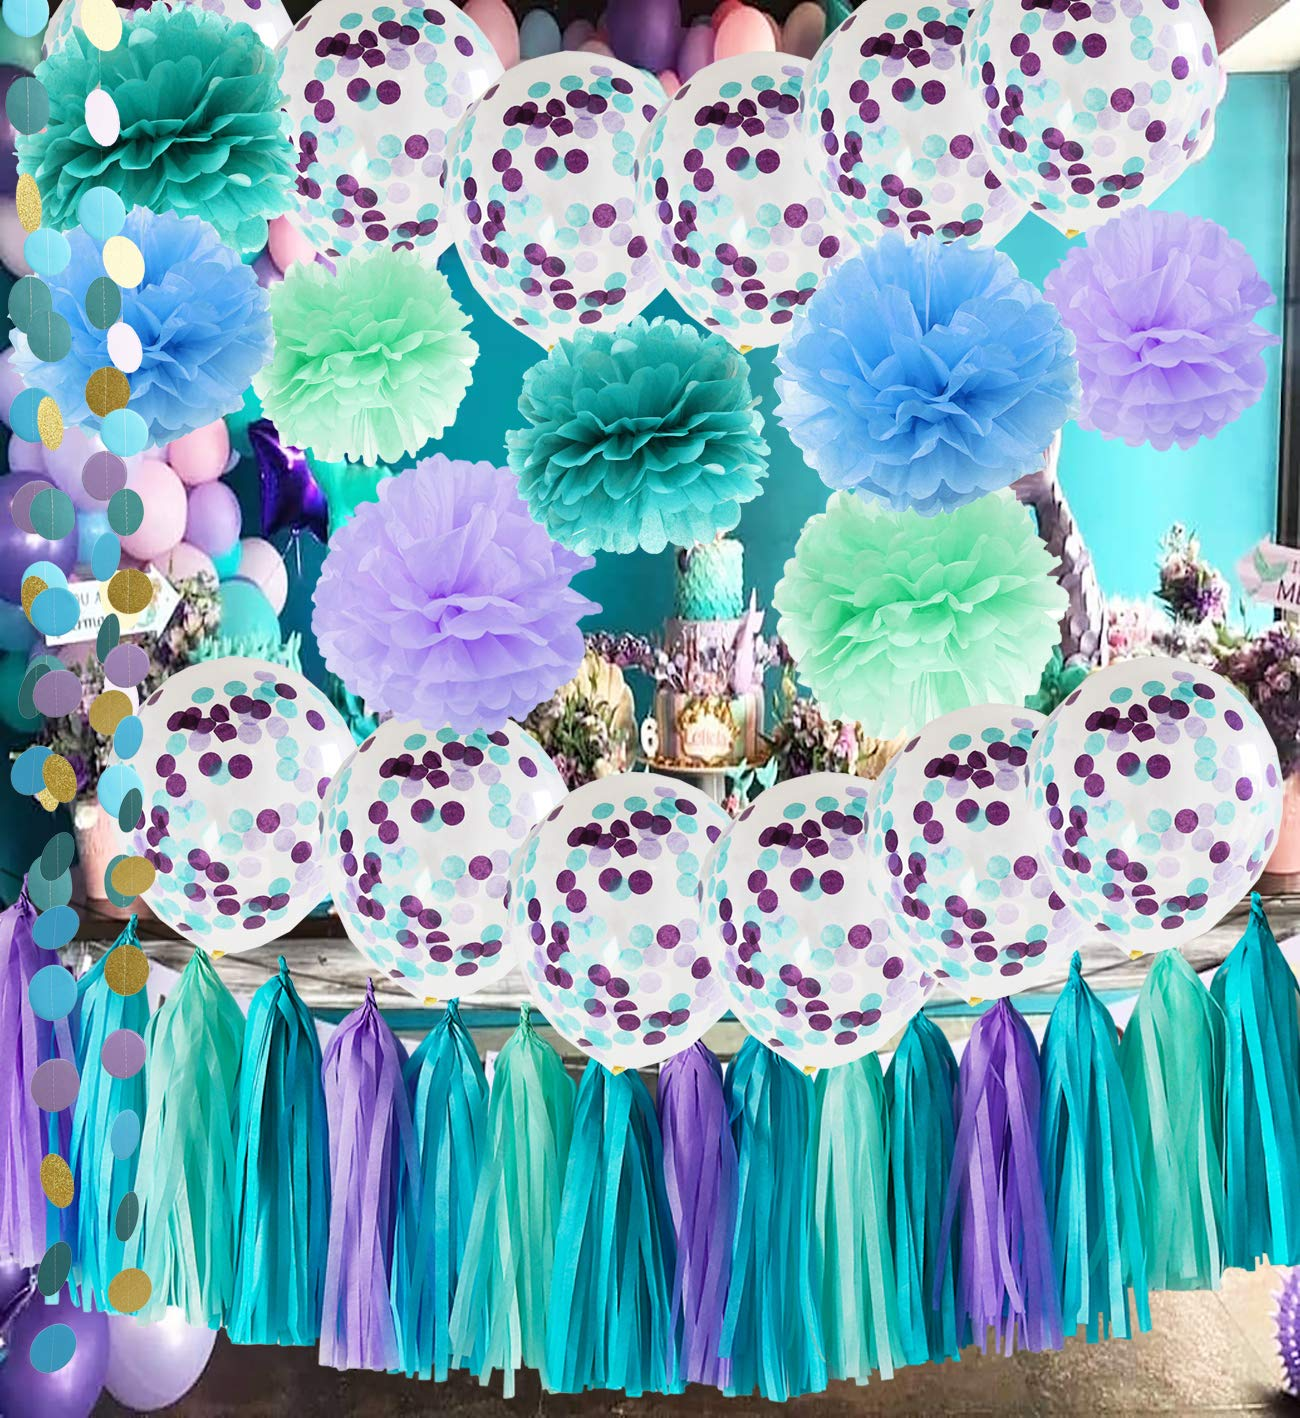 Under The Sea Party Supplies Mermaid Party Decorations Teal Purple Blue Mint Tissue Pom Poms First Birthday Decorations Baby Shower Decorations